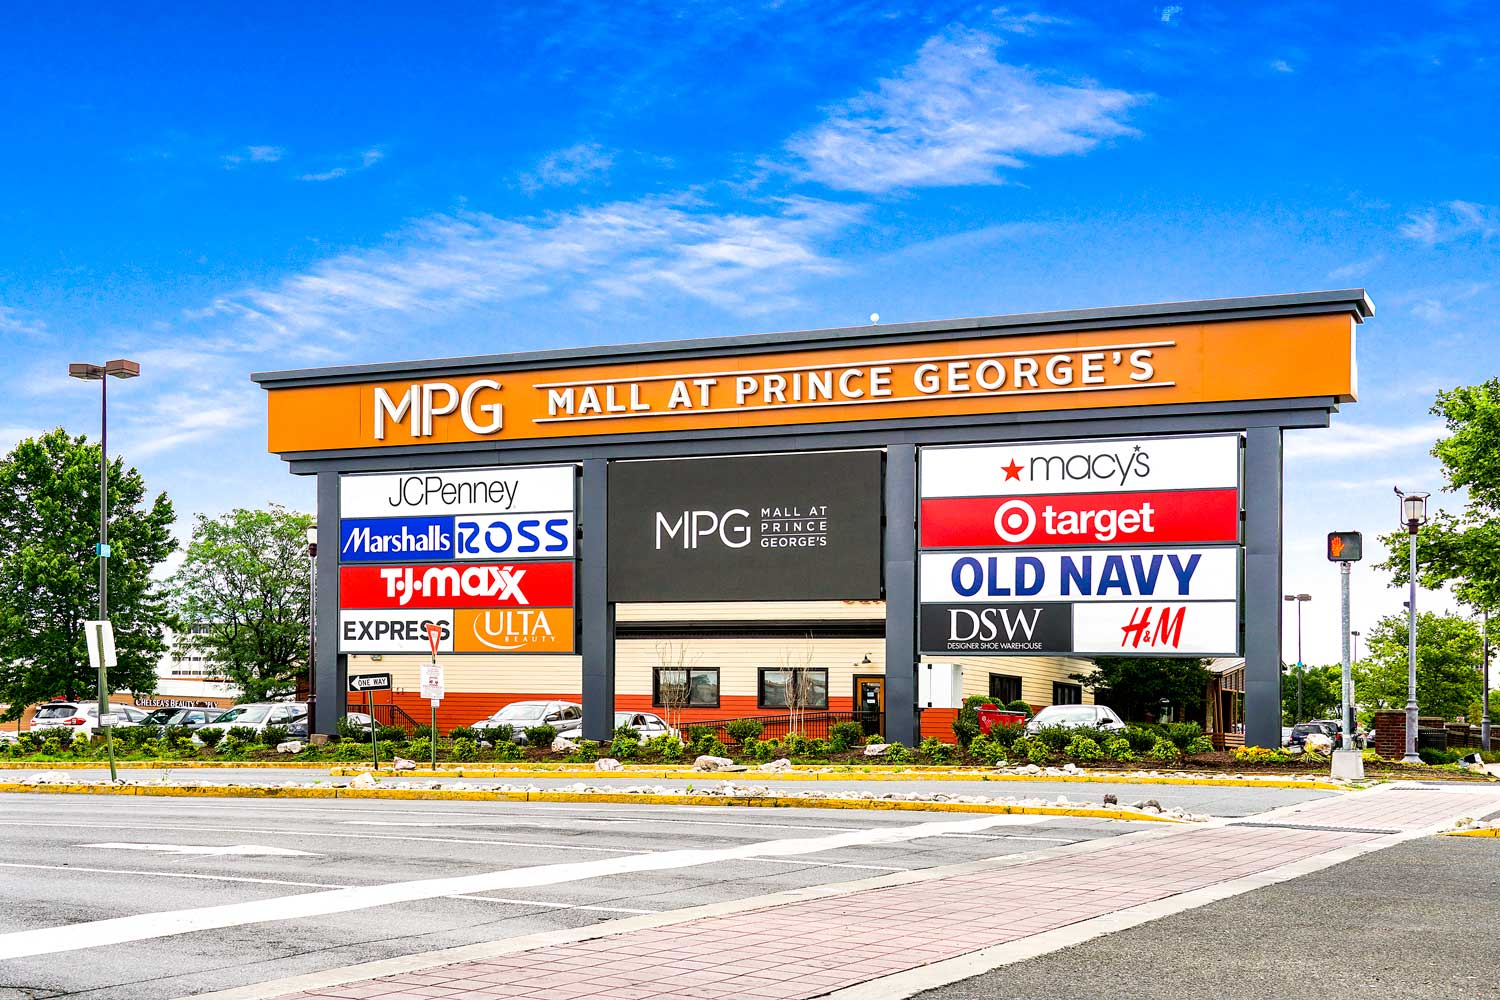 The Mall at Prince George's is 5 minutes from Kirkwood Apartments in Hyattsville, MD